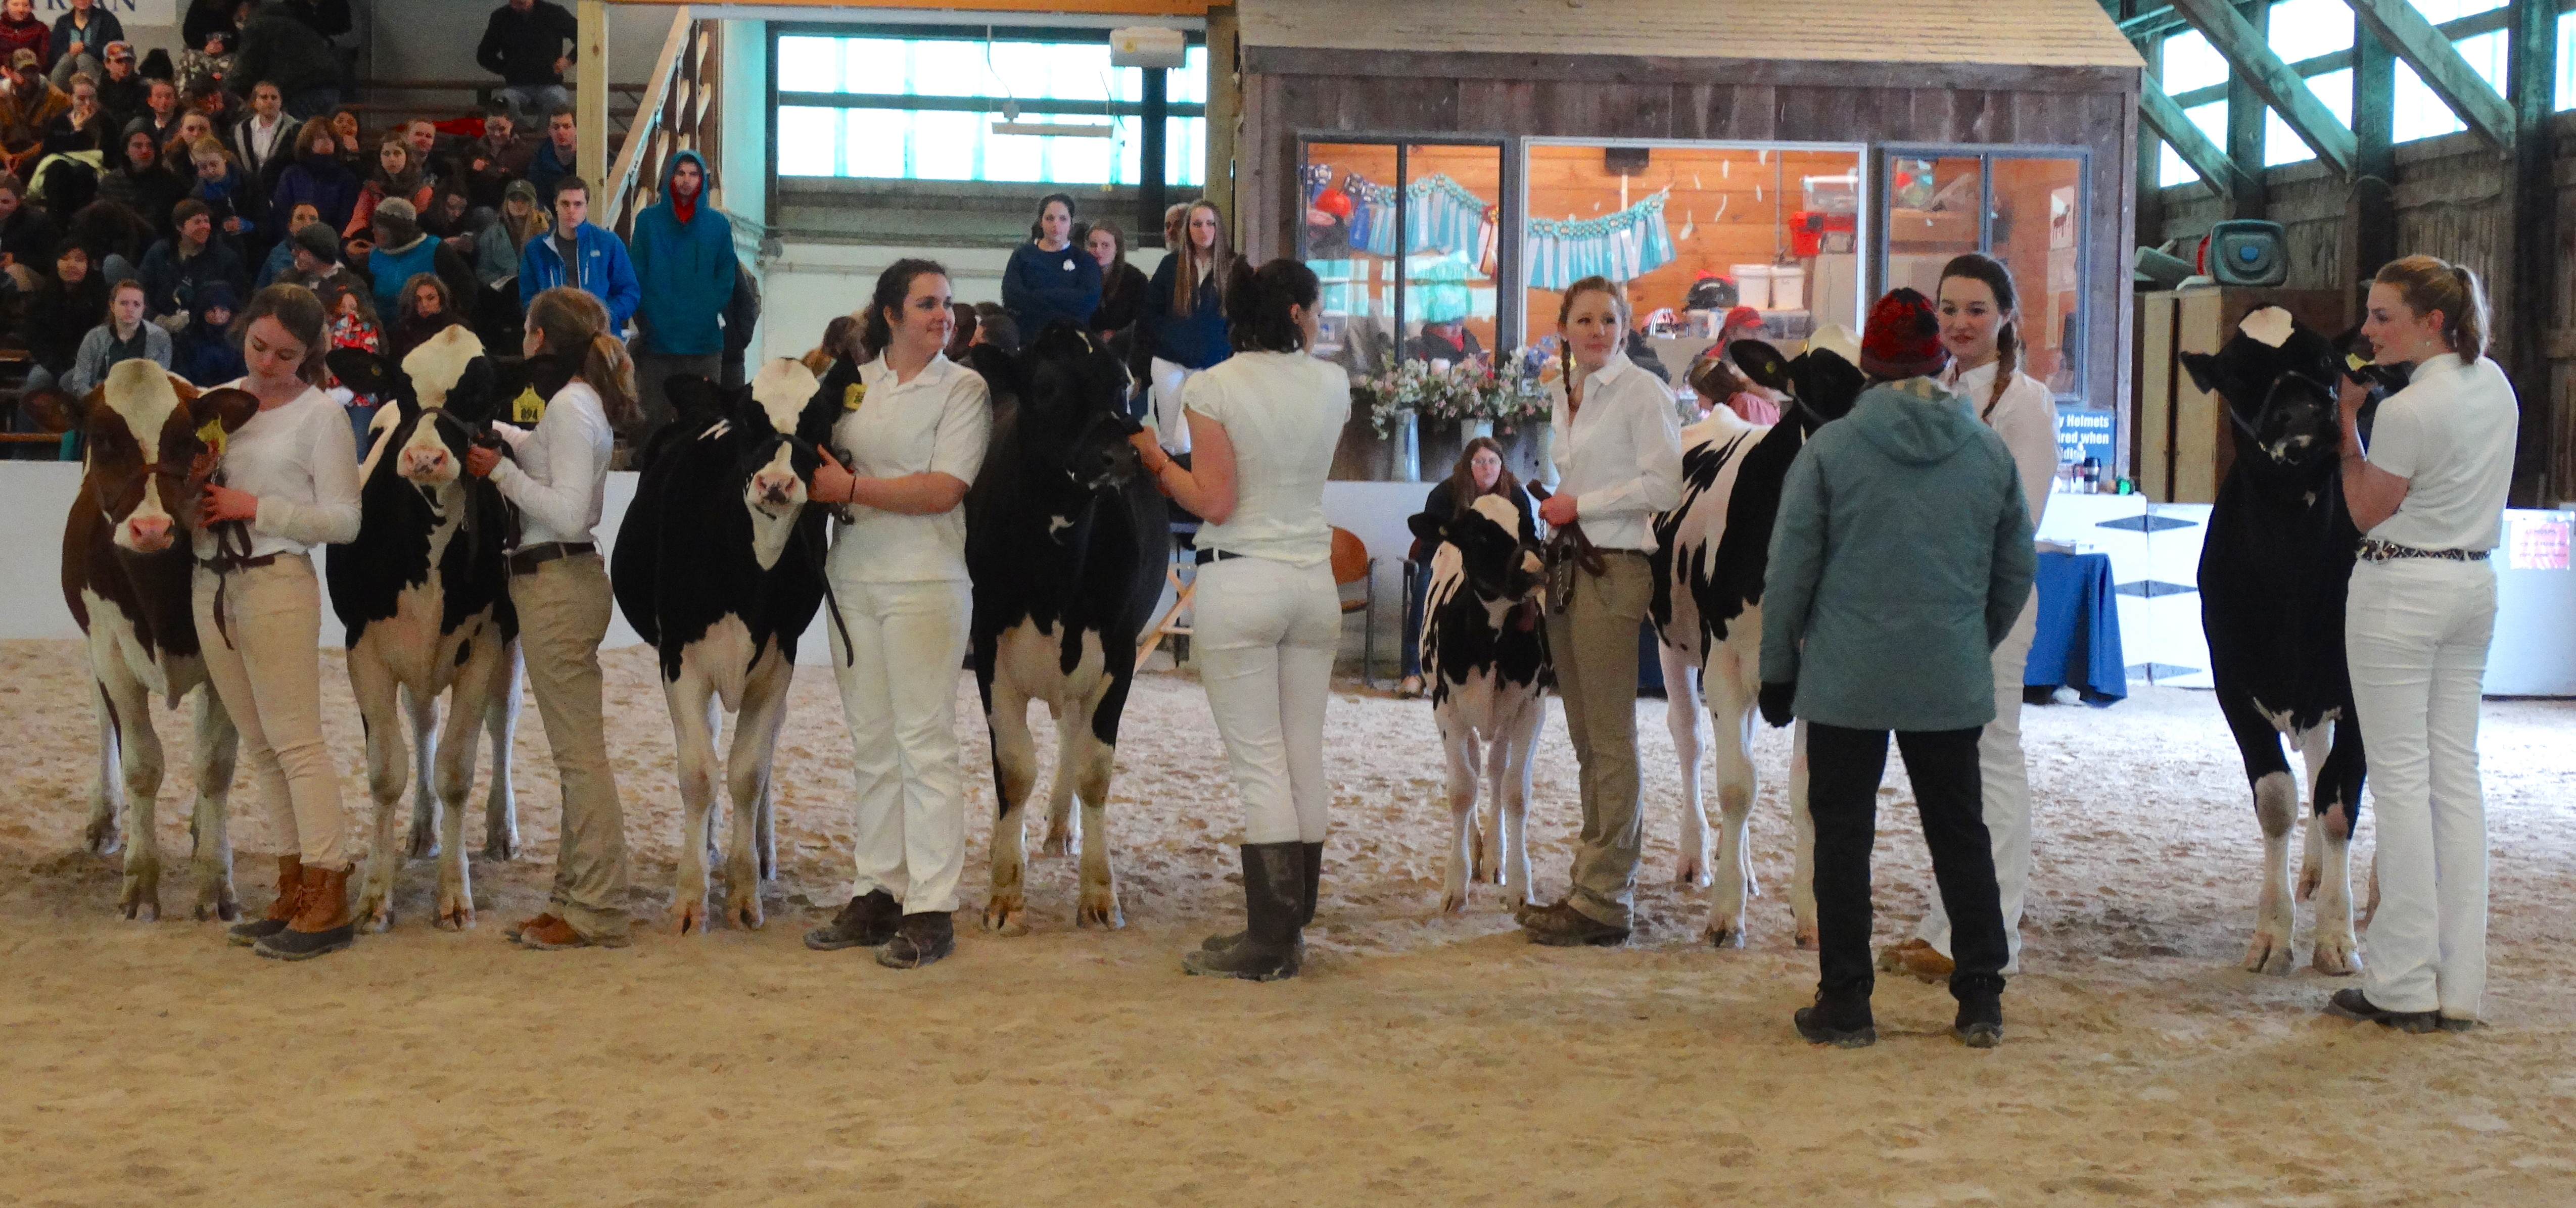 Judging Dairy Cattle can be done for competition, fun, recognition, and even money